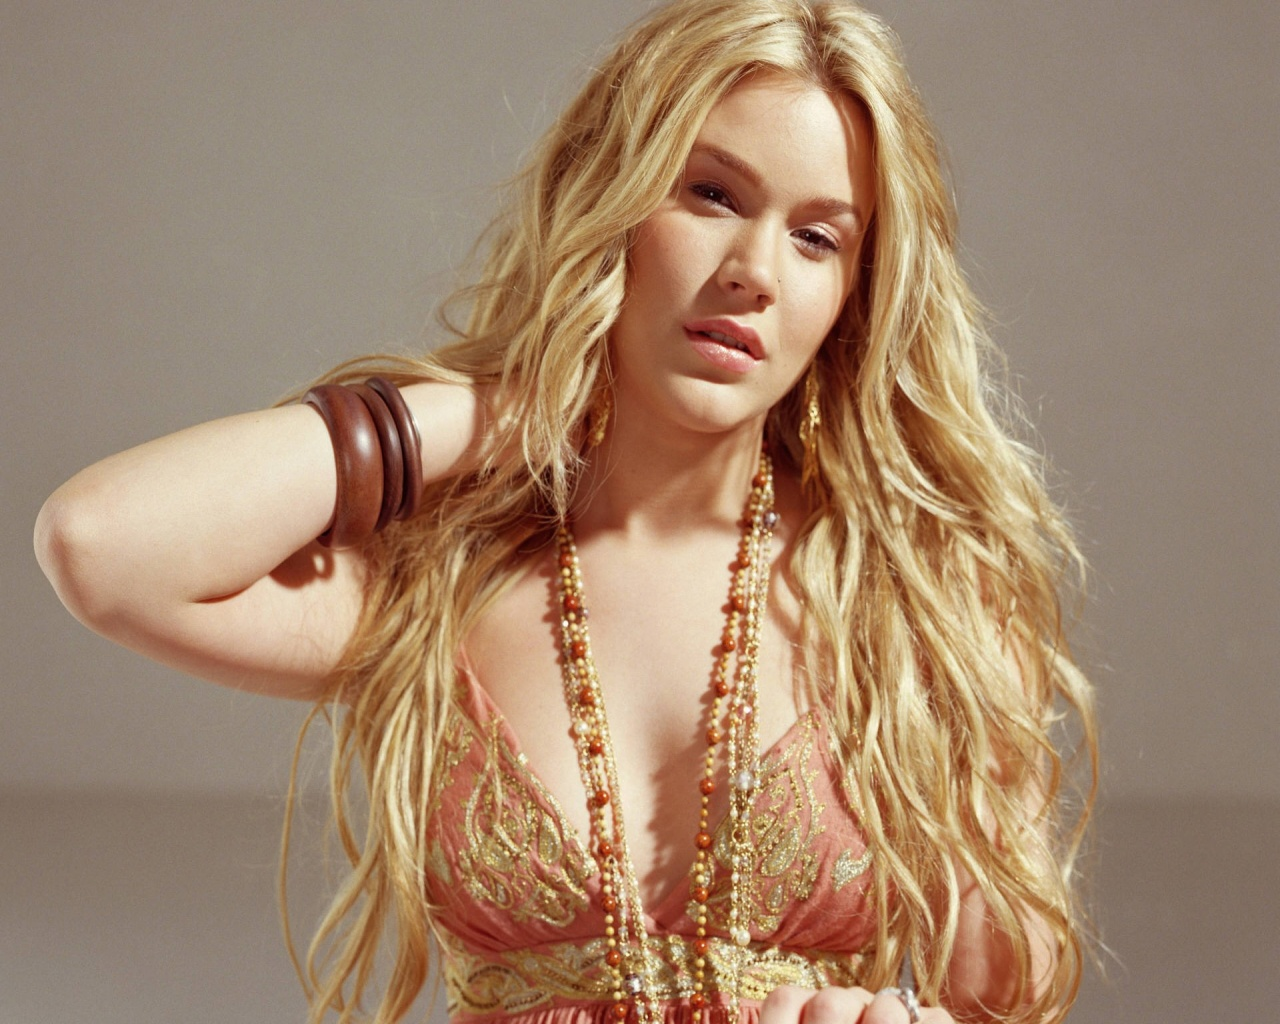 Joss Stone British Singer Hot Wallpapers Page4angelsblogspotcom